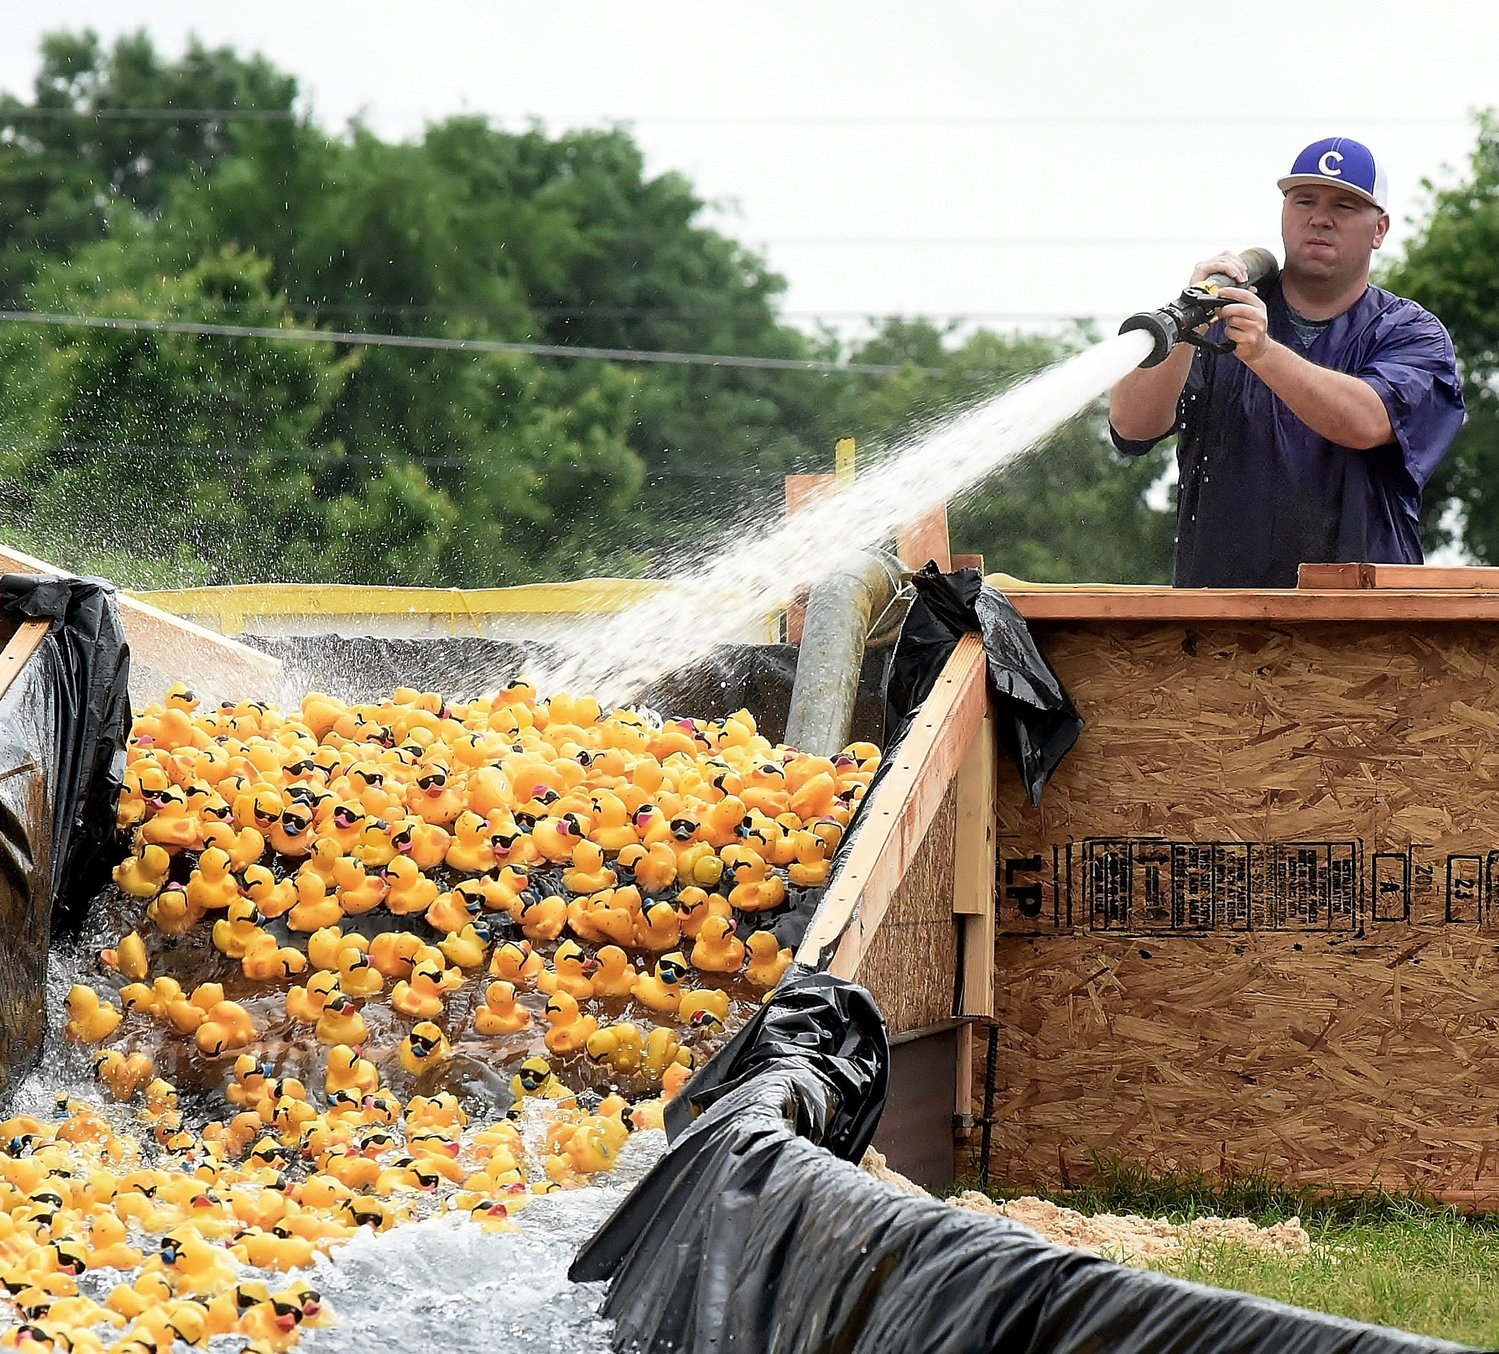 Using a high-powered water hose, a race official forces a round of ducks out of the pool at the top of the race course in Saturday's Duck Derby.